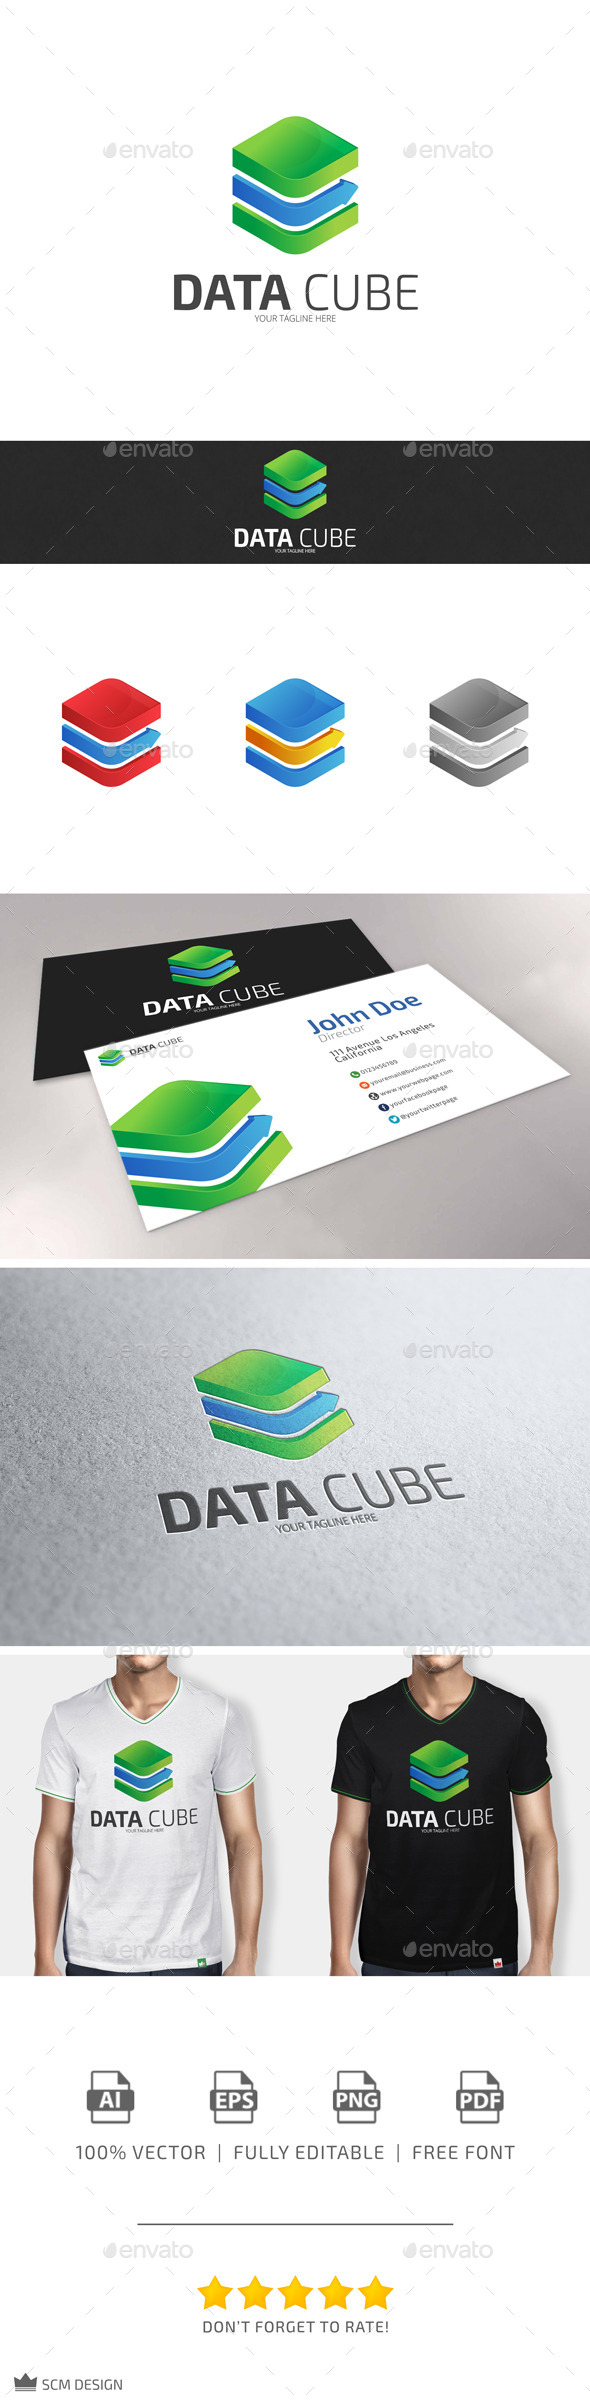 GraphicRiver Data Cube Logo 10113429